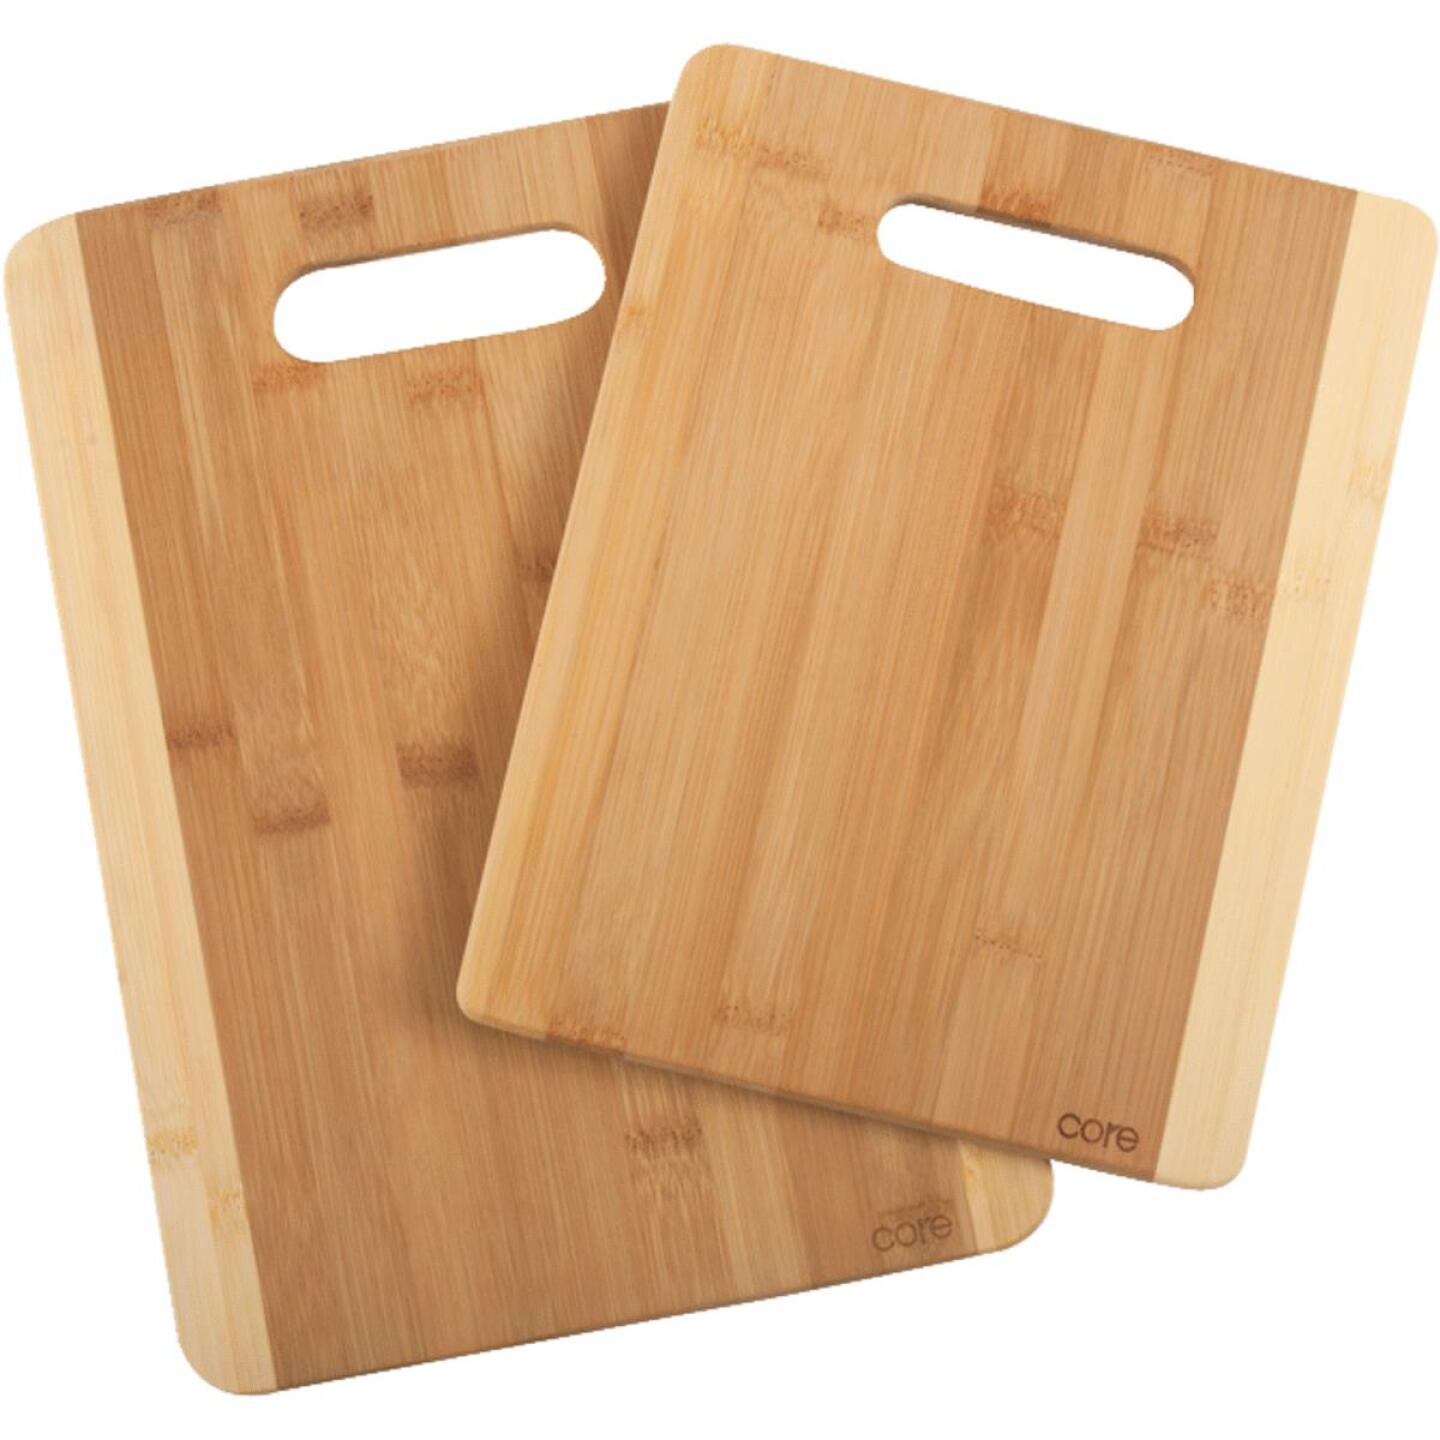 Core Daisy 2-Tone Natural Bamboo Cutting Board (2 Pack) Image 1